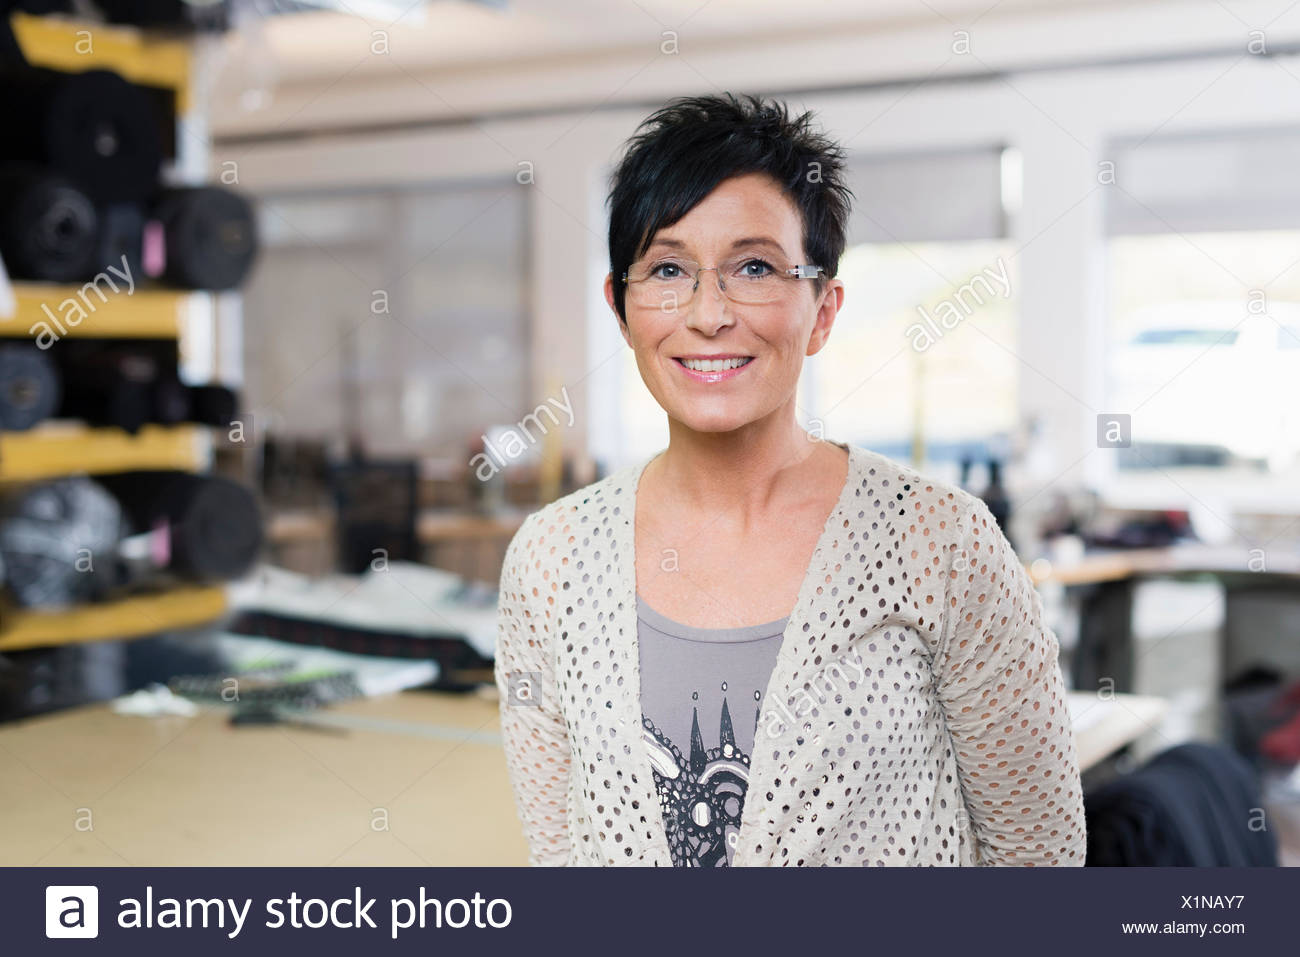 Portrait of mature seamstress in workshop - Stock Image